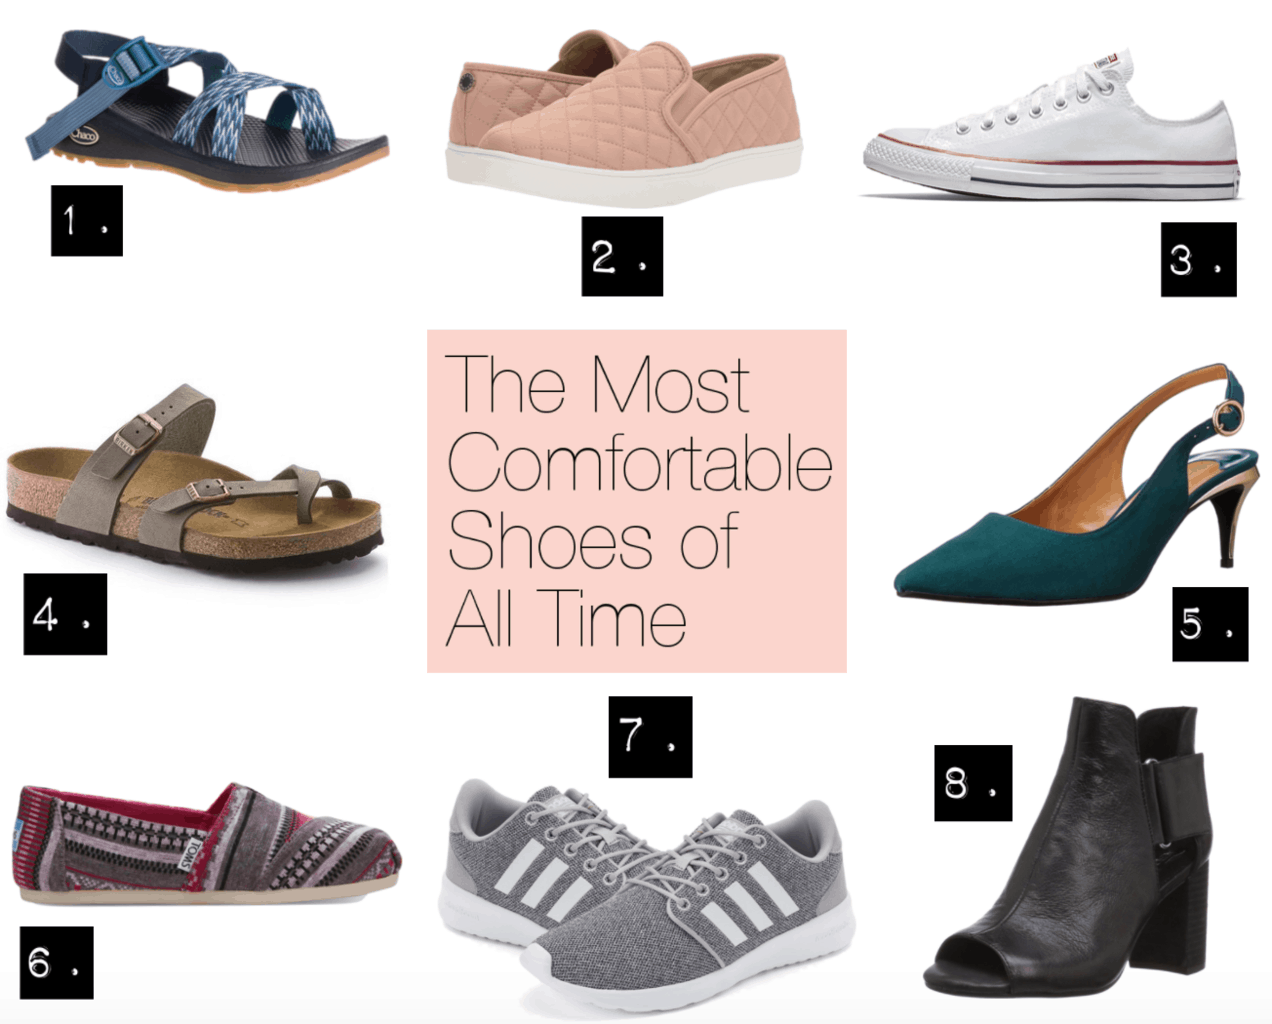 We tried them: These are the most comfortable shoes for women of all time, including Chacos sandals, Birkenstocks, Steve Madden quilted slip-ons, Converse sneakers, slingback heels, Toms slip ons